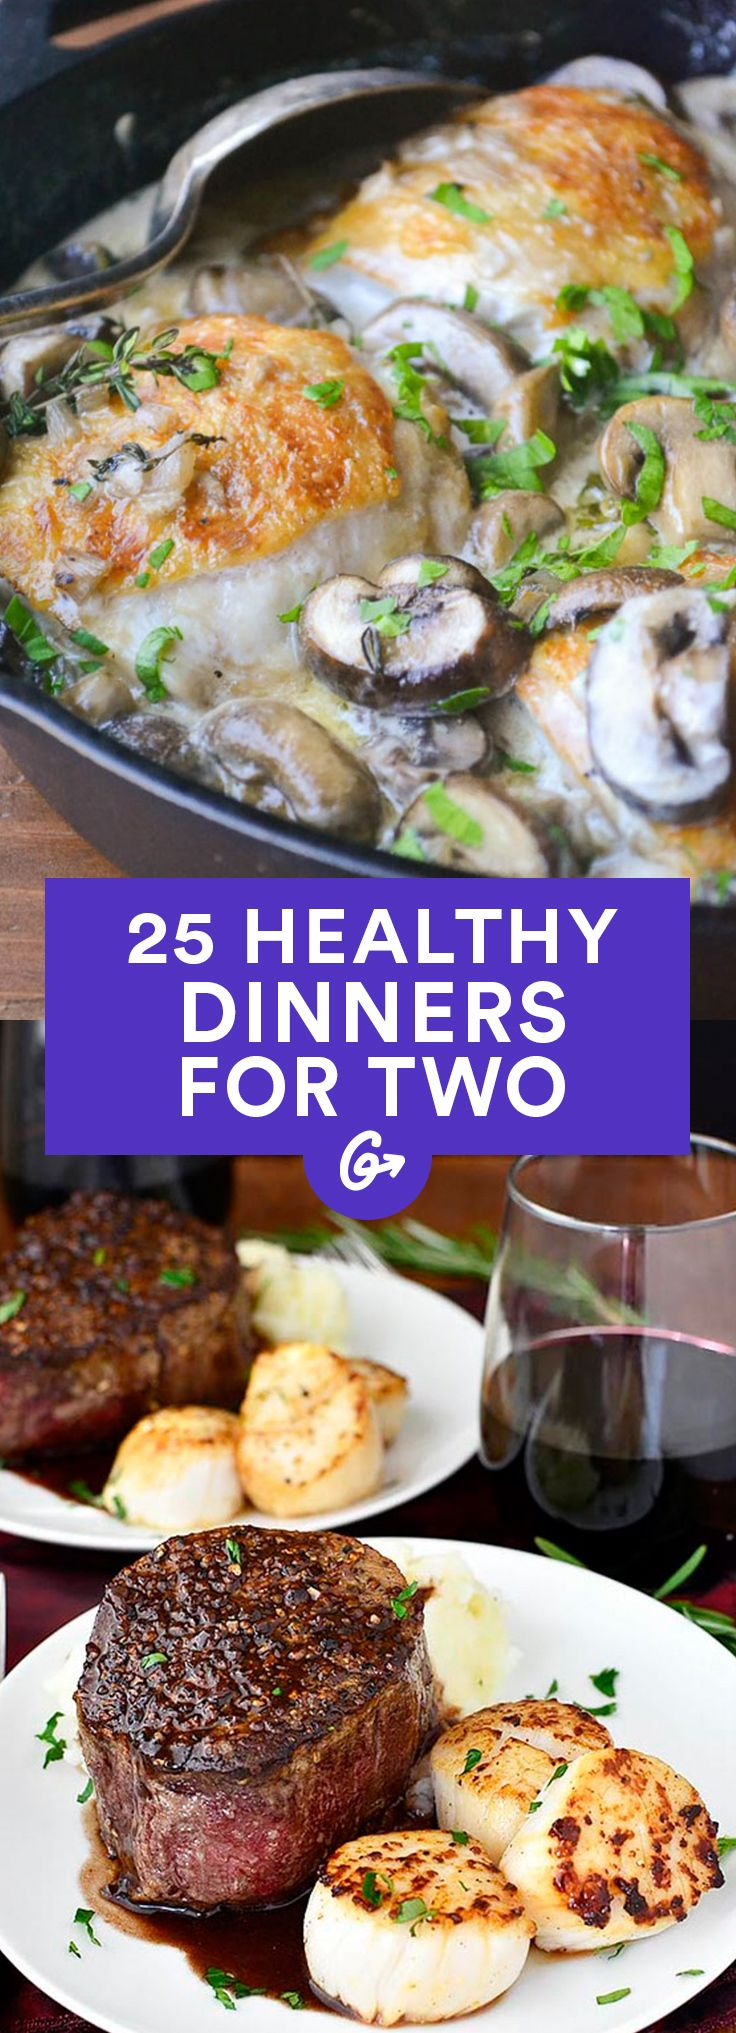 Lima Healthy Dinner Recipes For Two